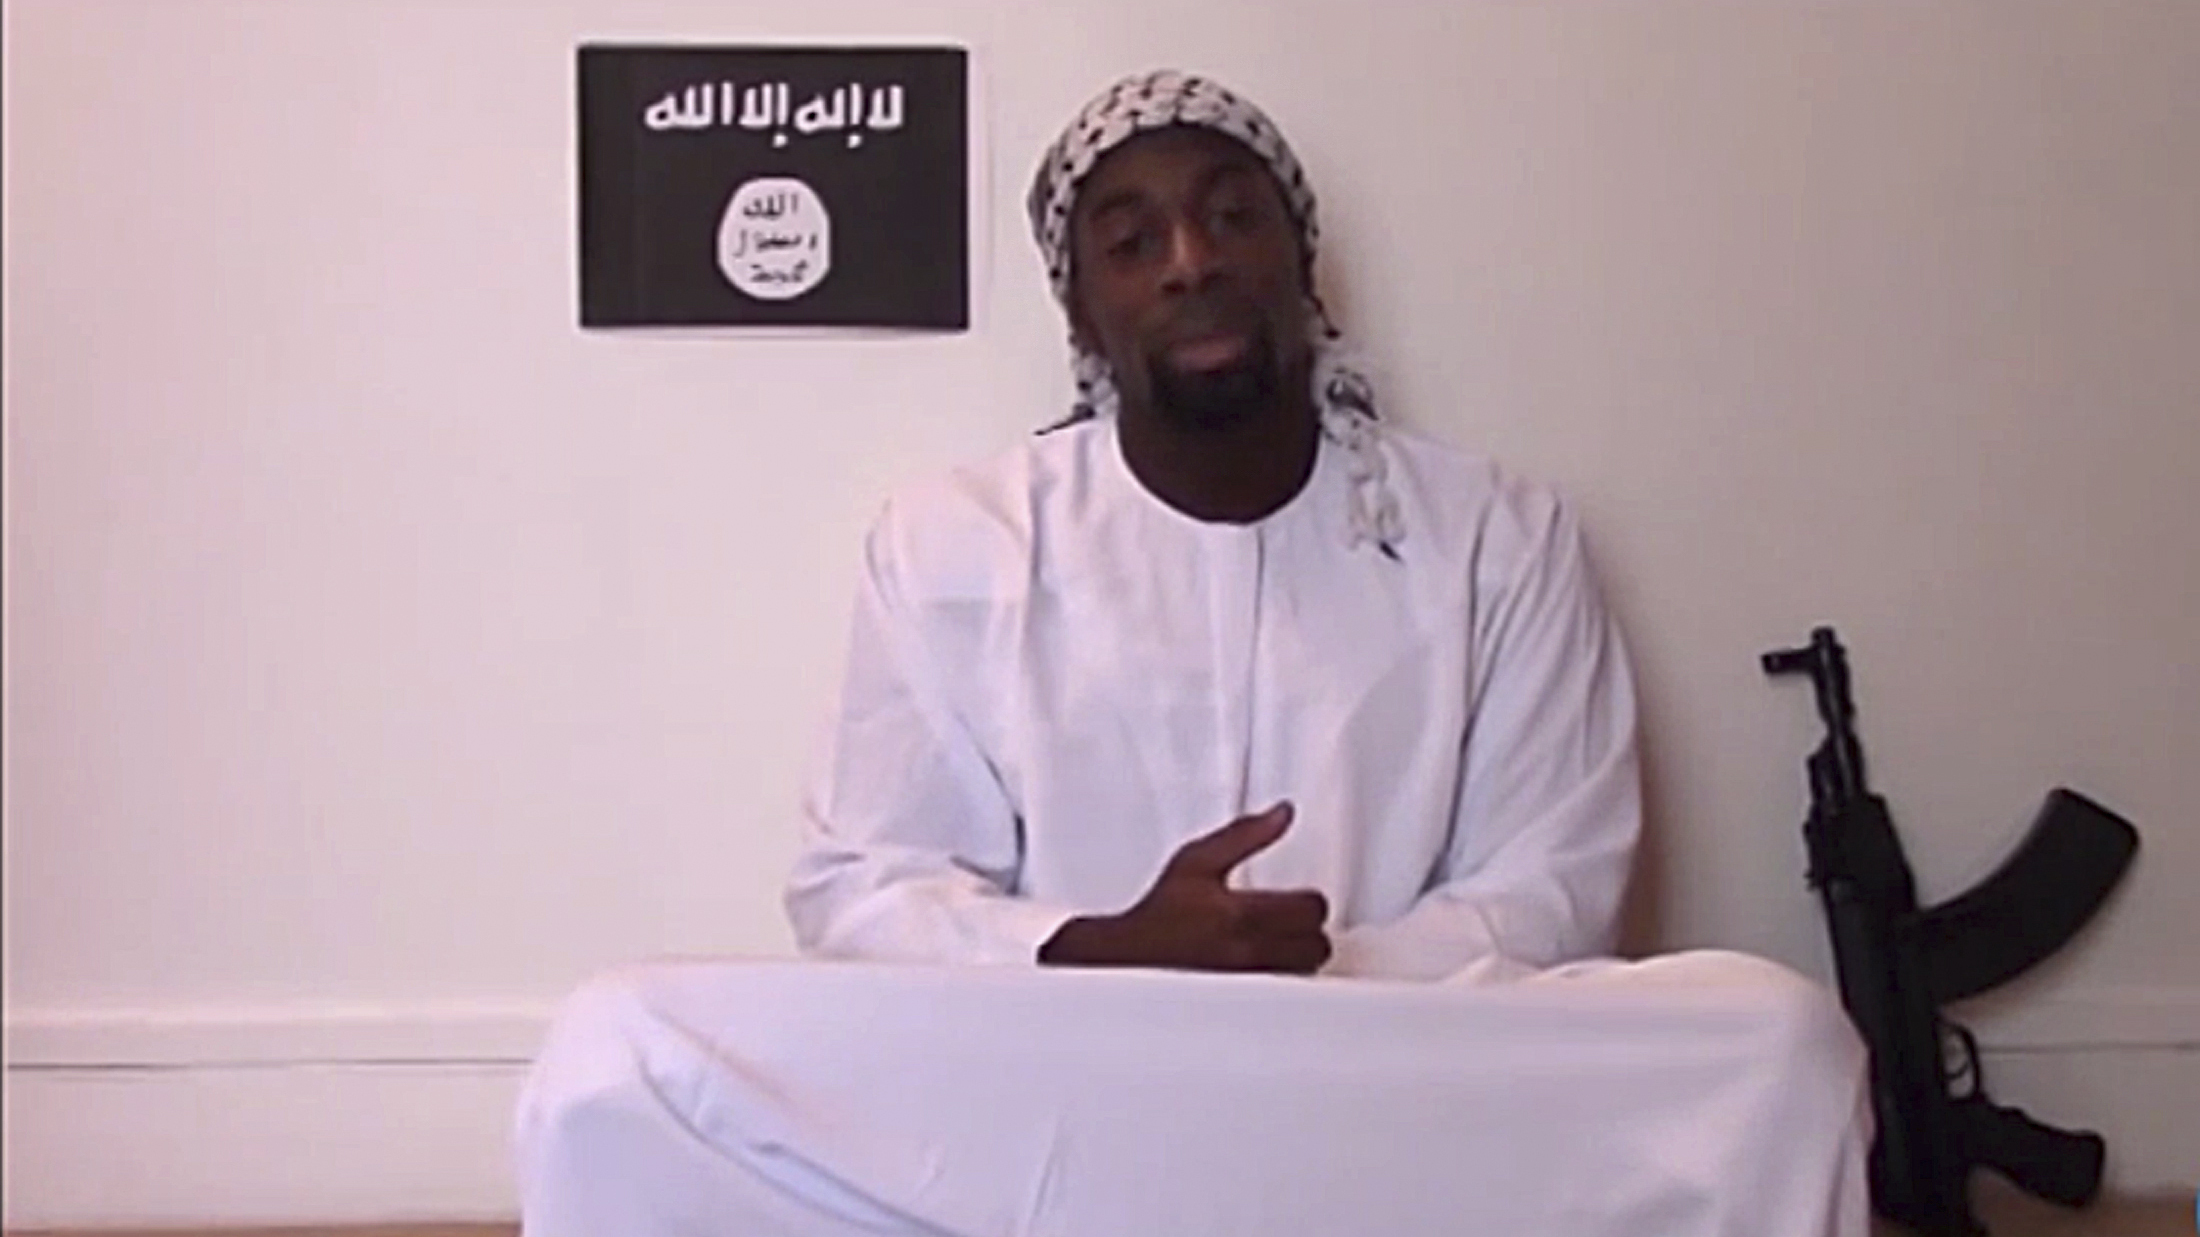 Paris Suspects Declared Allegiance To Al-Qaida, ISIS